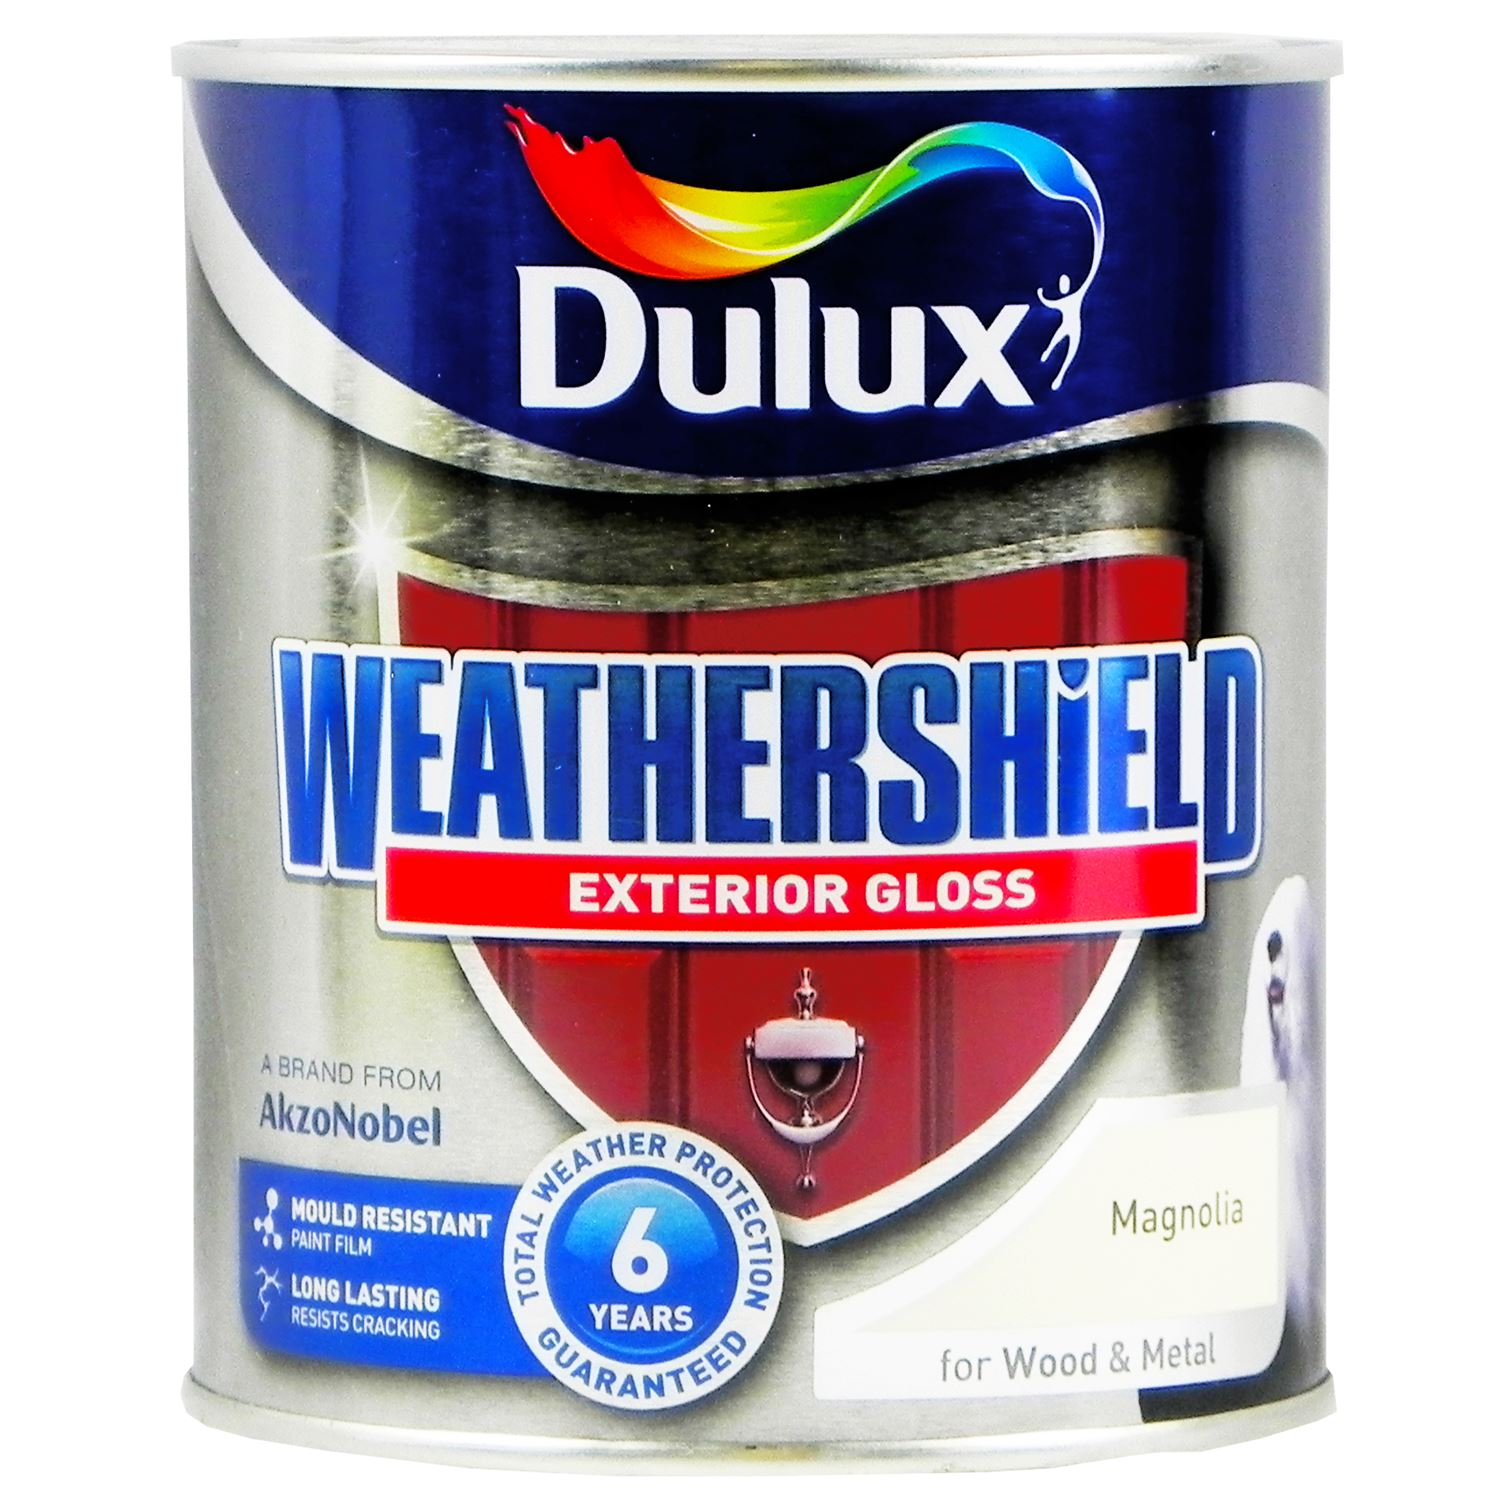 Dulux Weather Shield Protection Exterior Gloss Paint Magnolia For Wood Metal